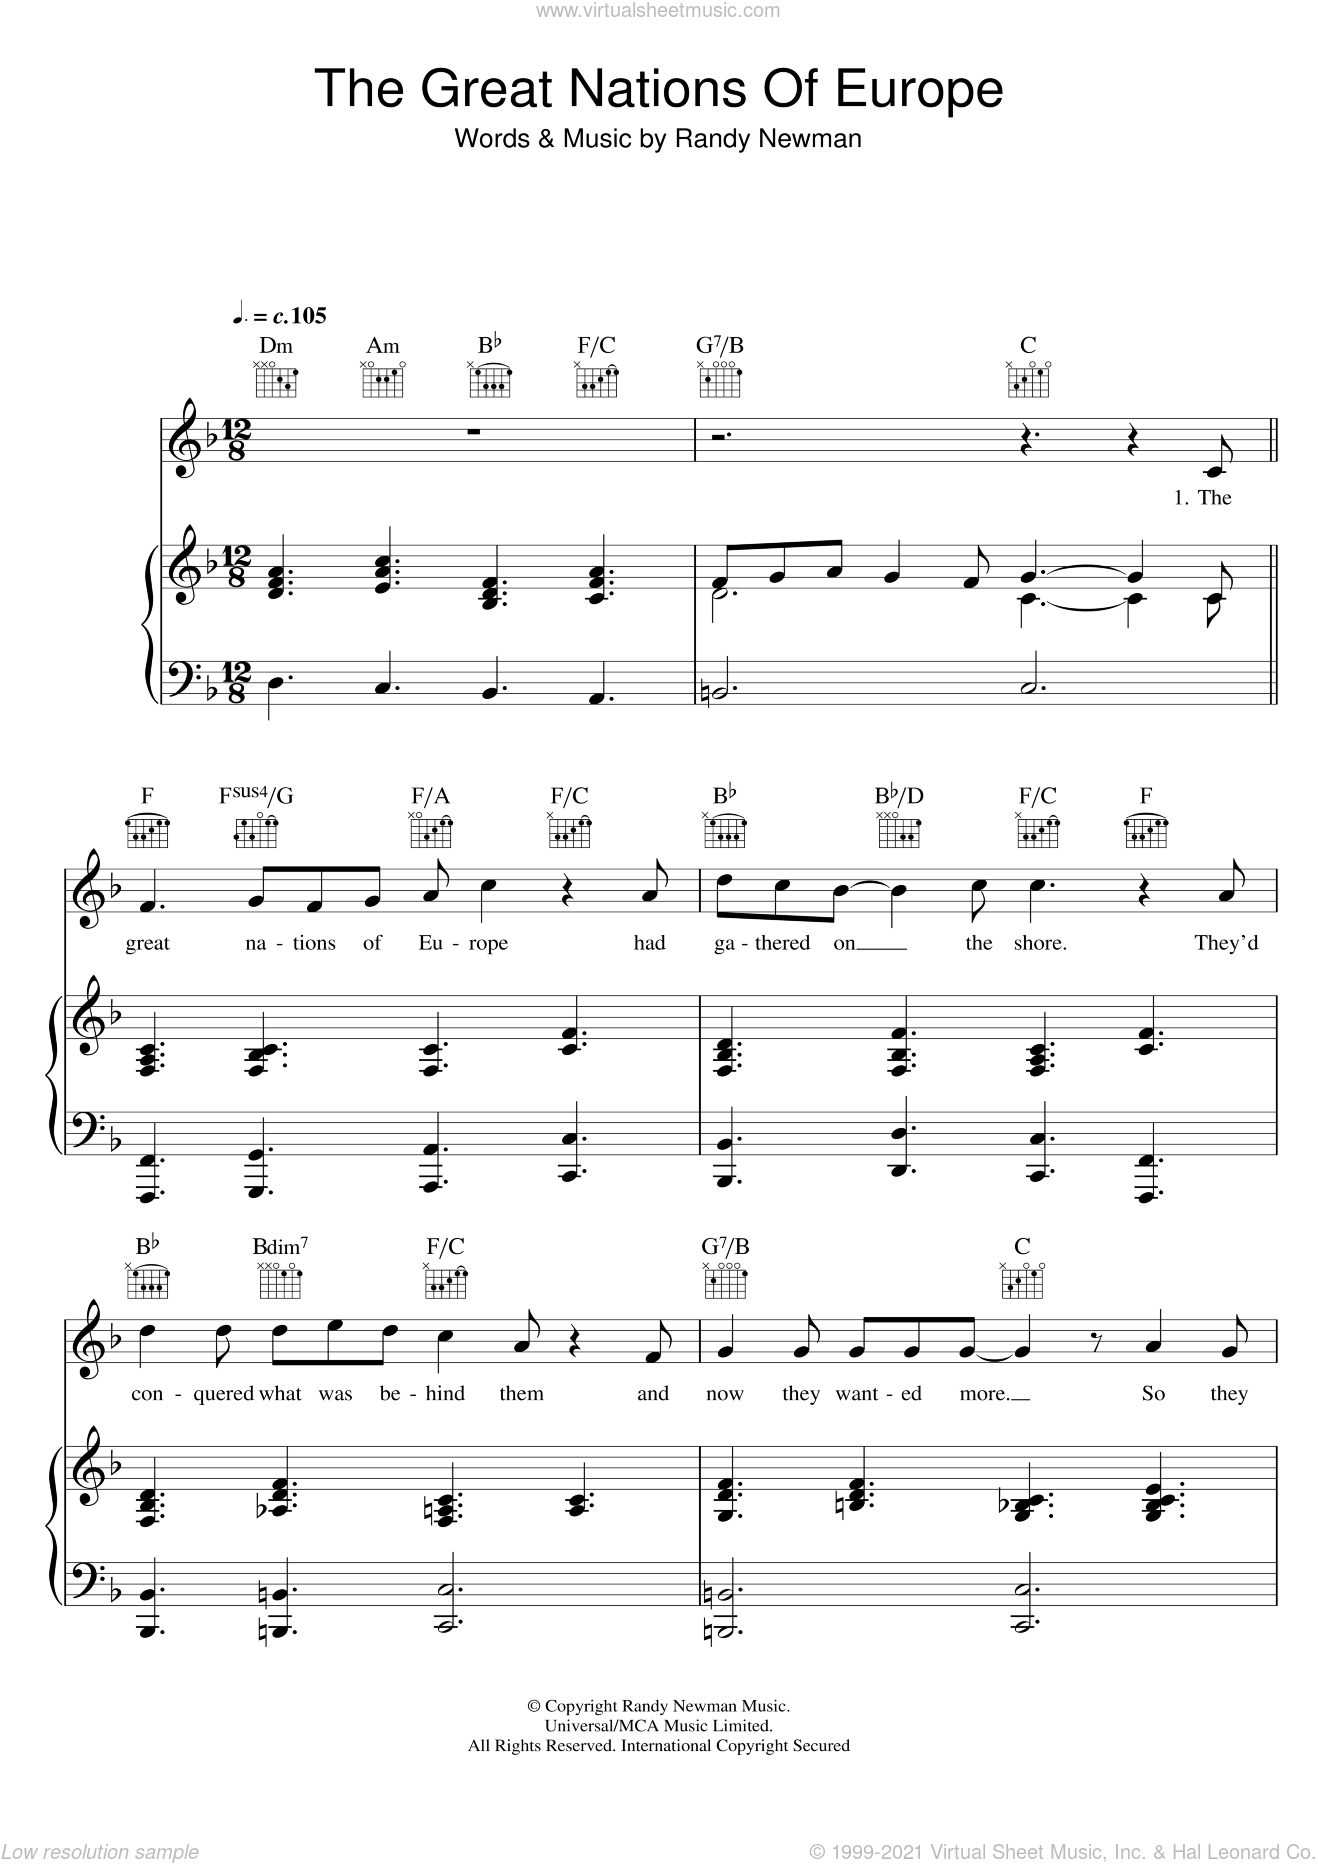 The Great Nations Of Europe sheet music for voice, piano or guitar by Randy Newman, intermediate skill level